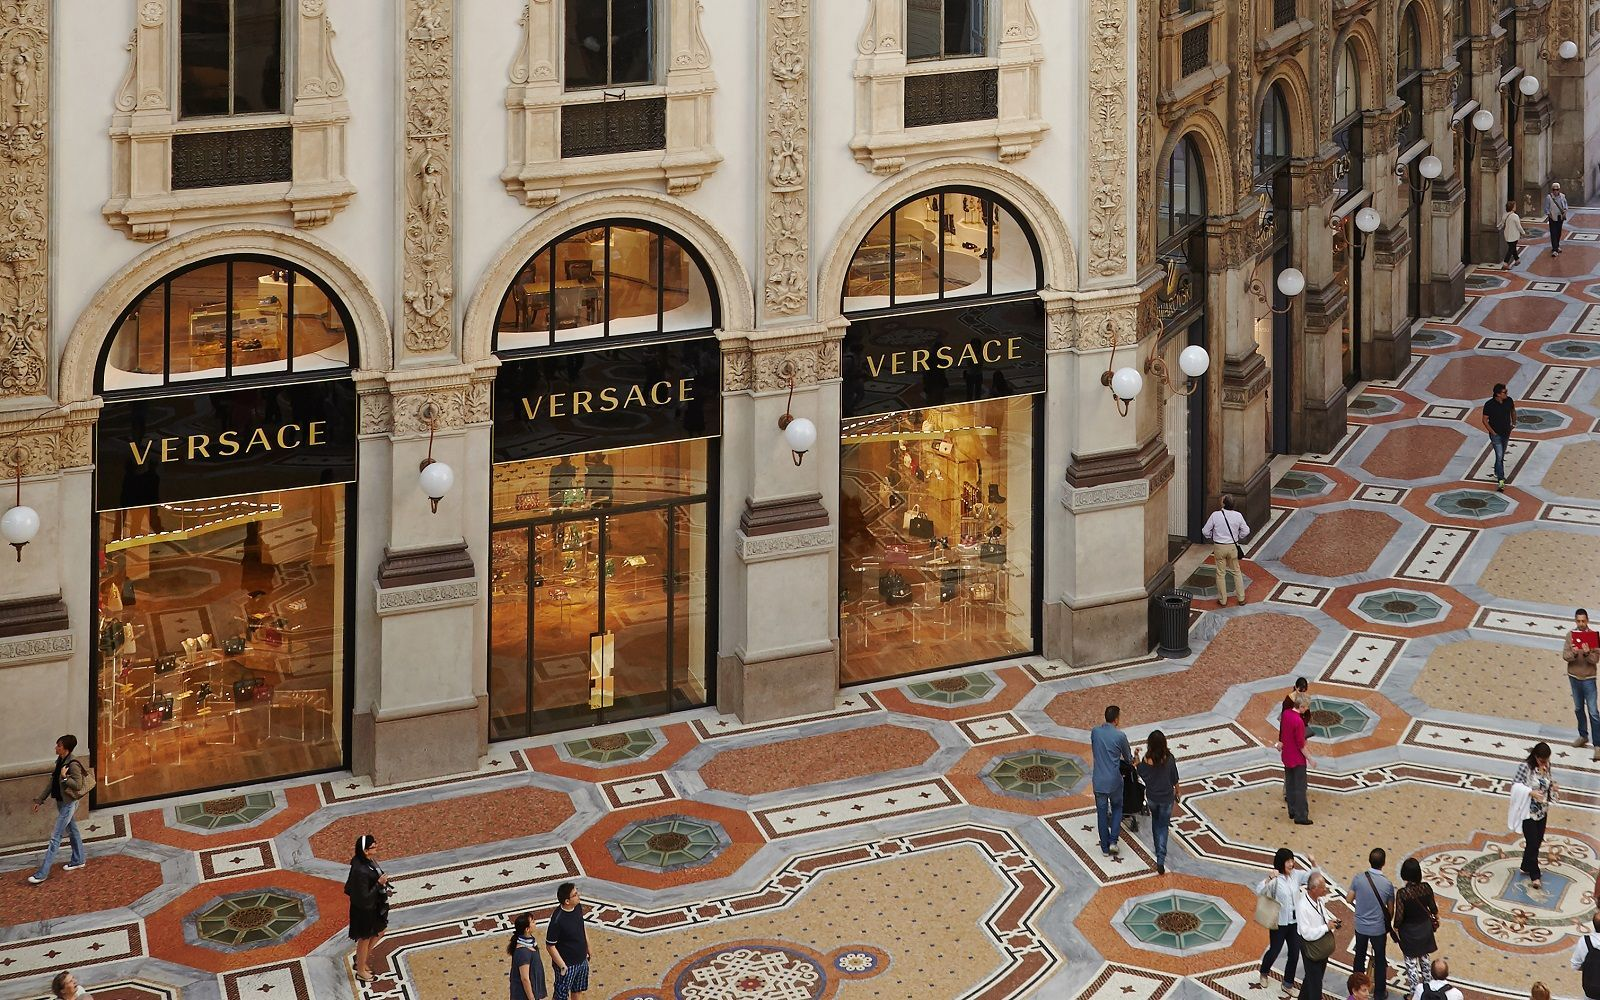 Versace Profits Grew By 55.5% During The Pandemic